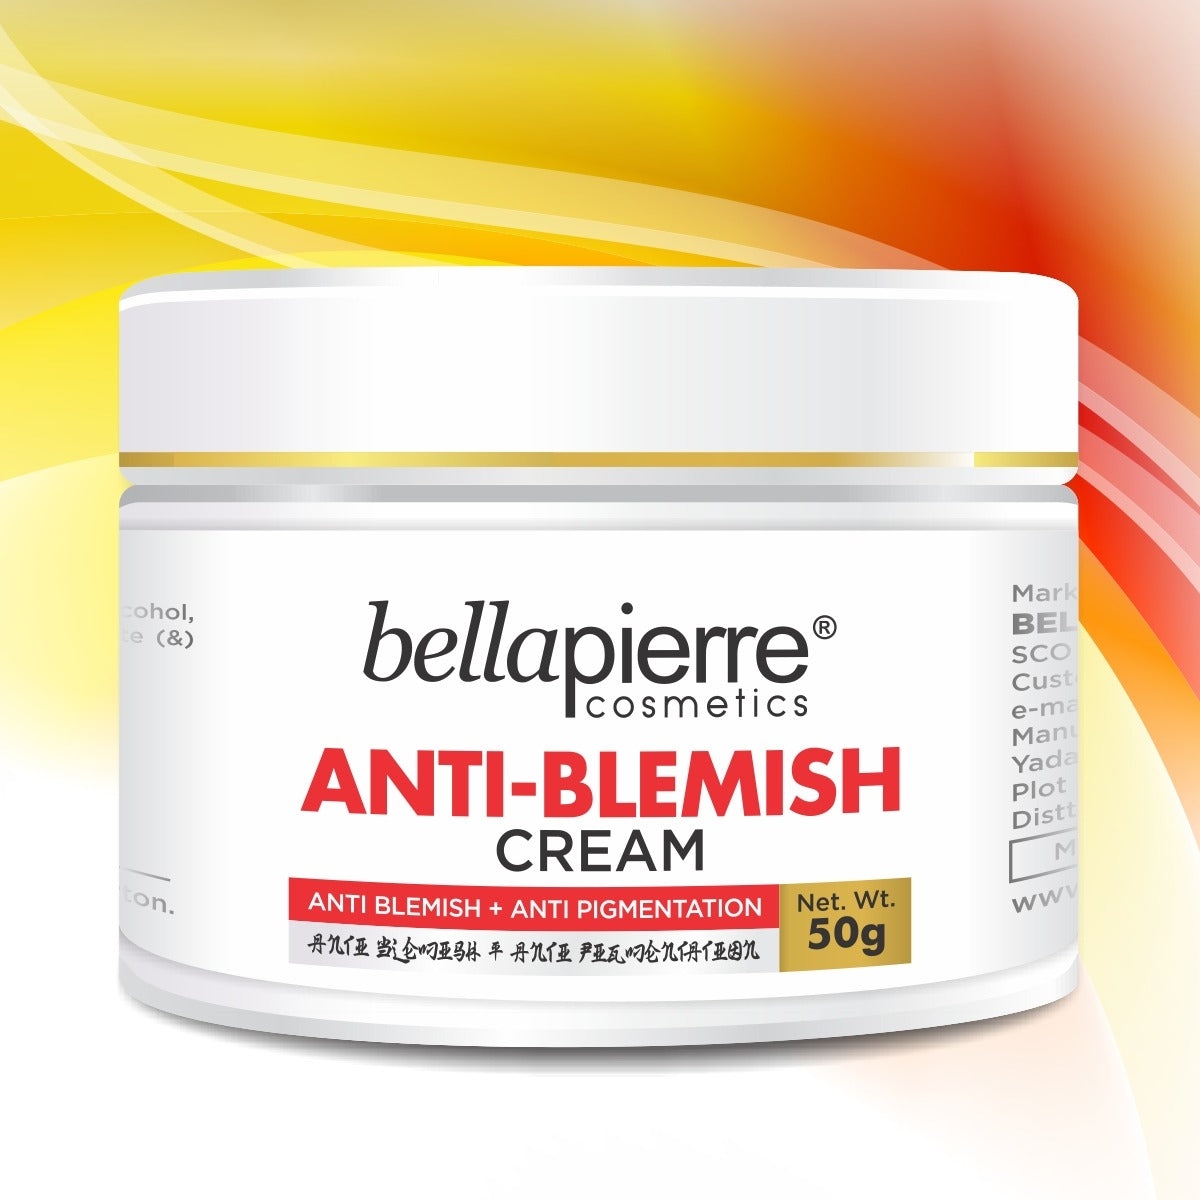 Bellapierre Anti Blemish & Pigmentation Face Cream for women 50 gms